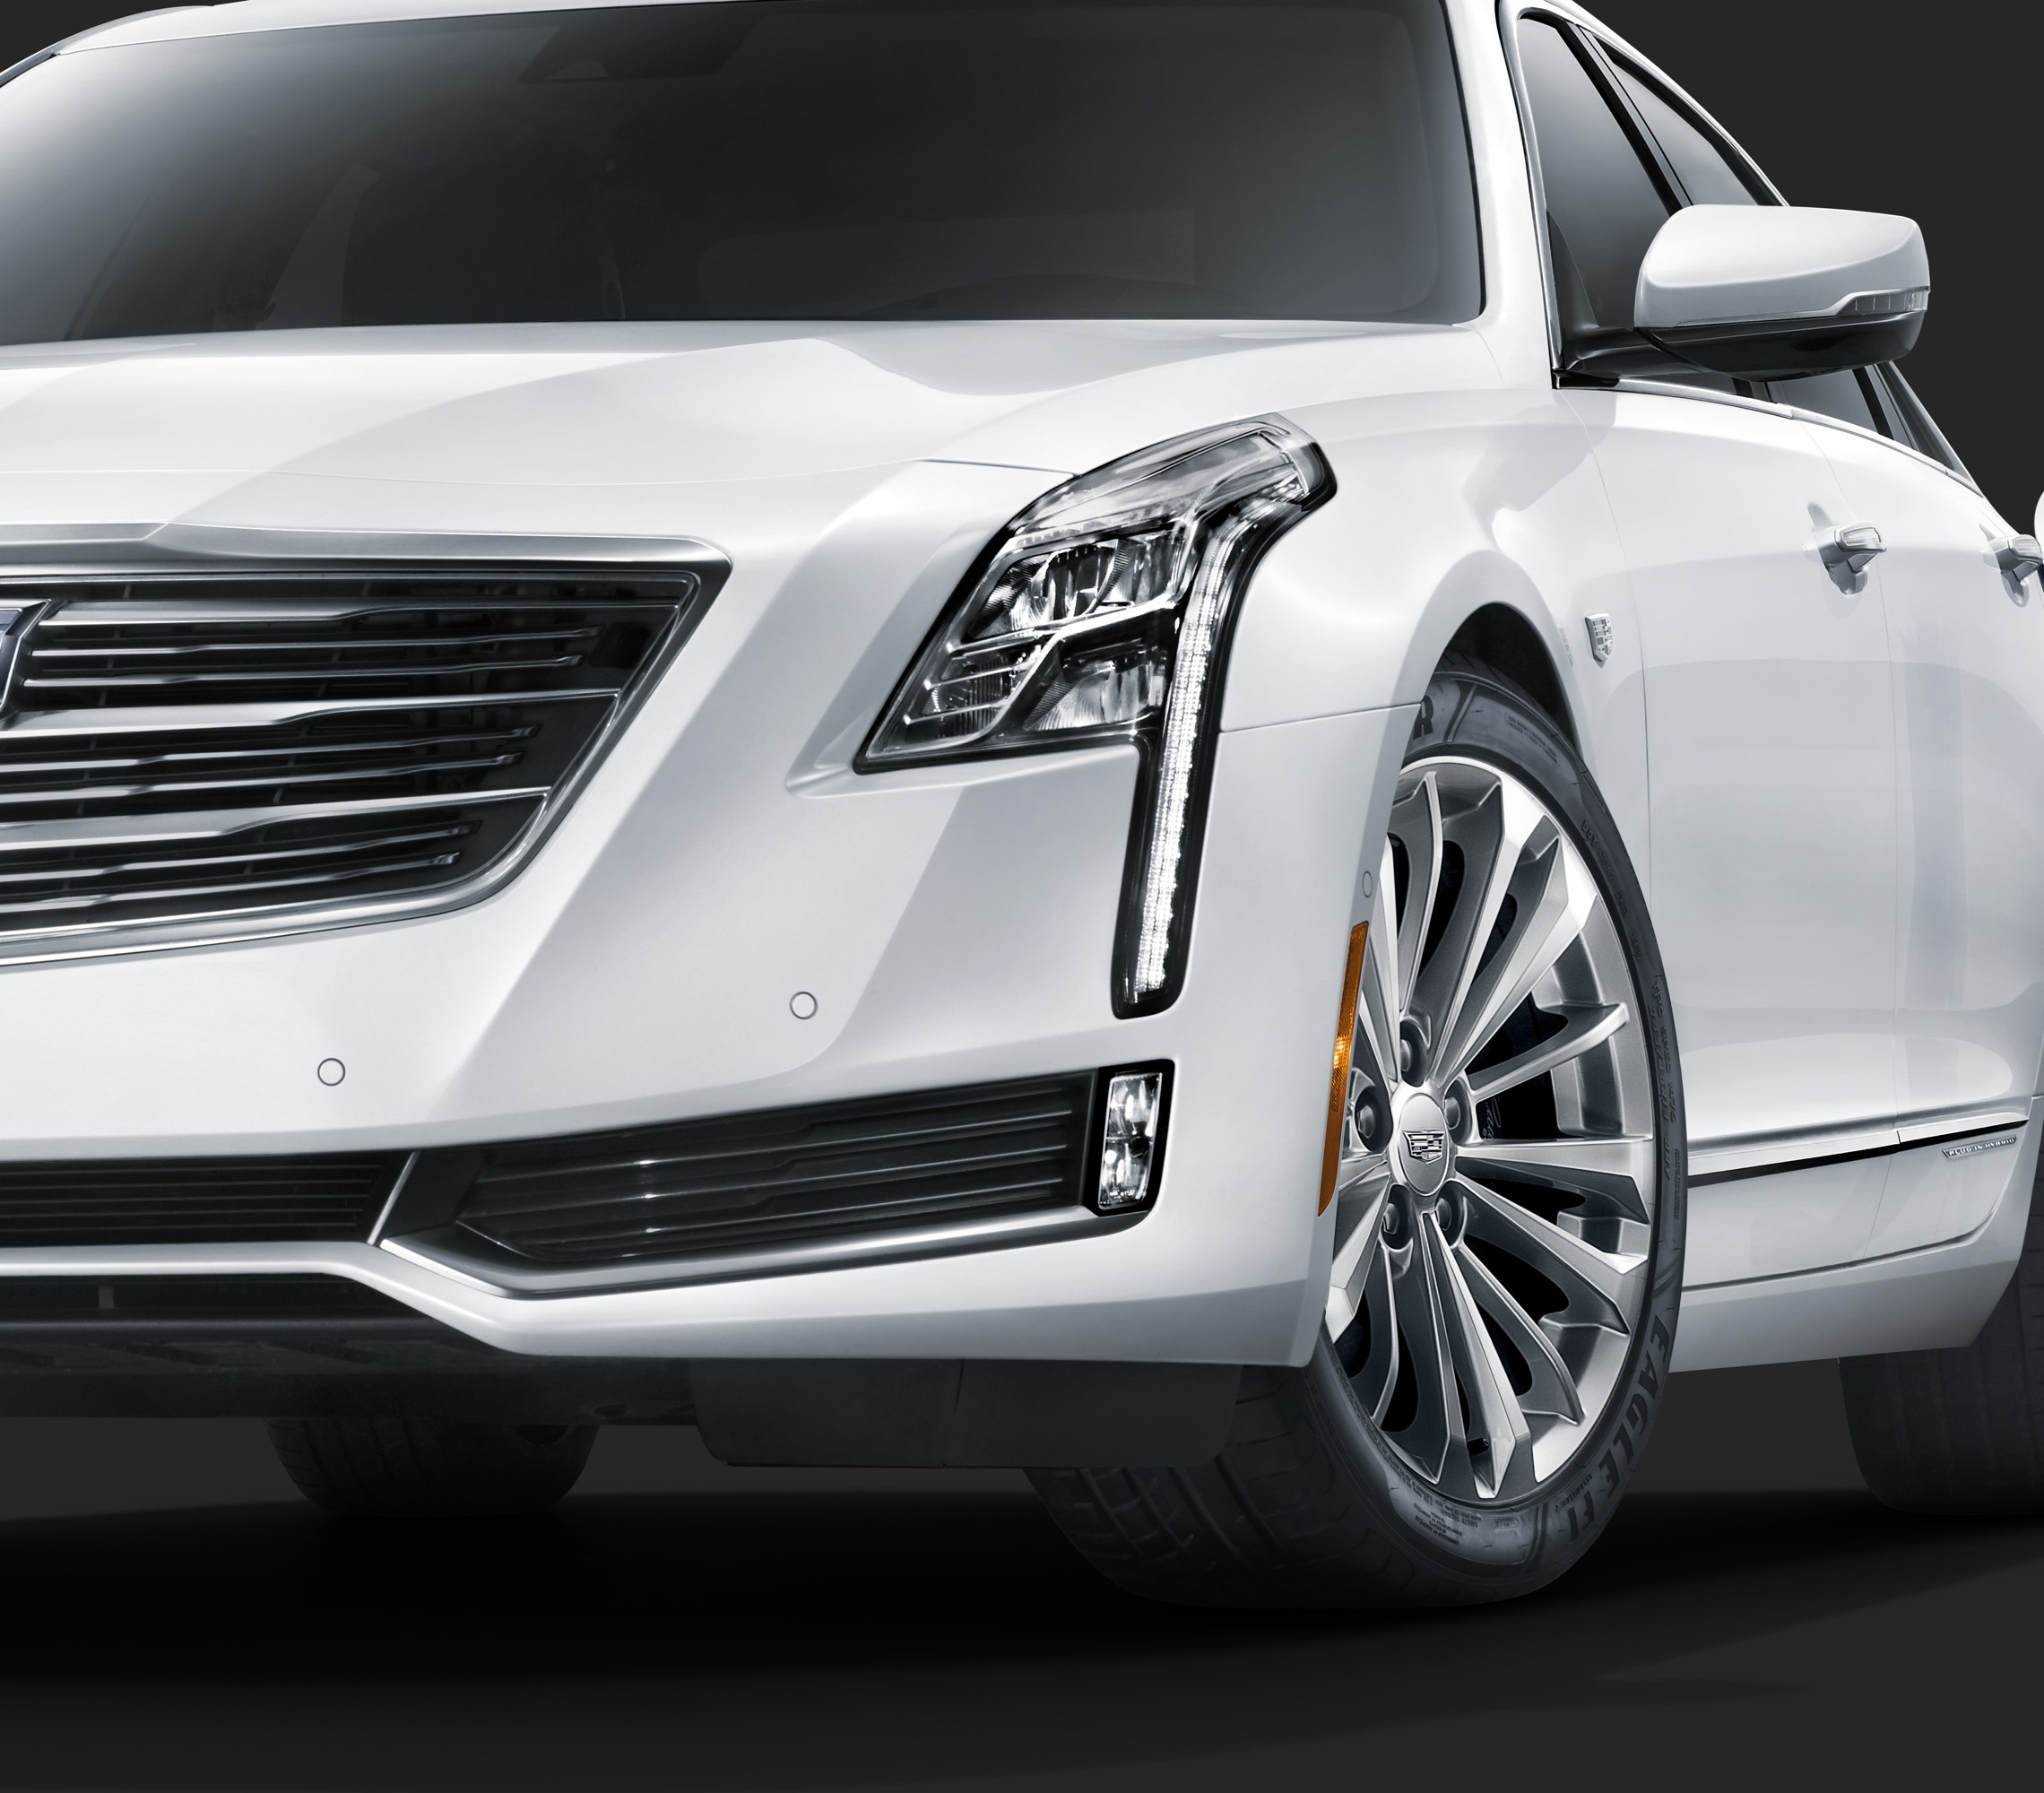 2017 Cadillac CT6 Plug-In Order Guide Reveals Only One